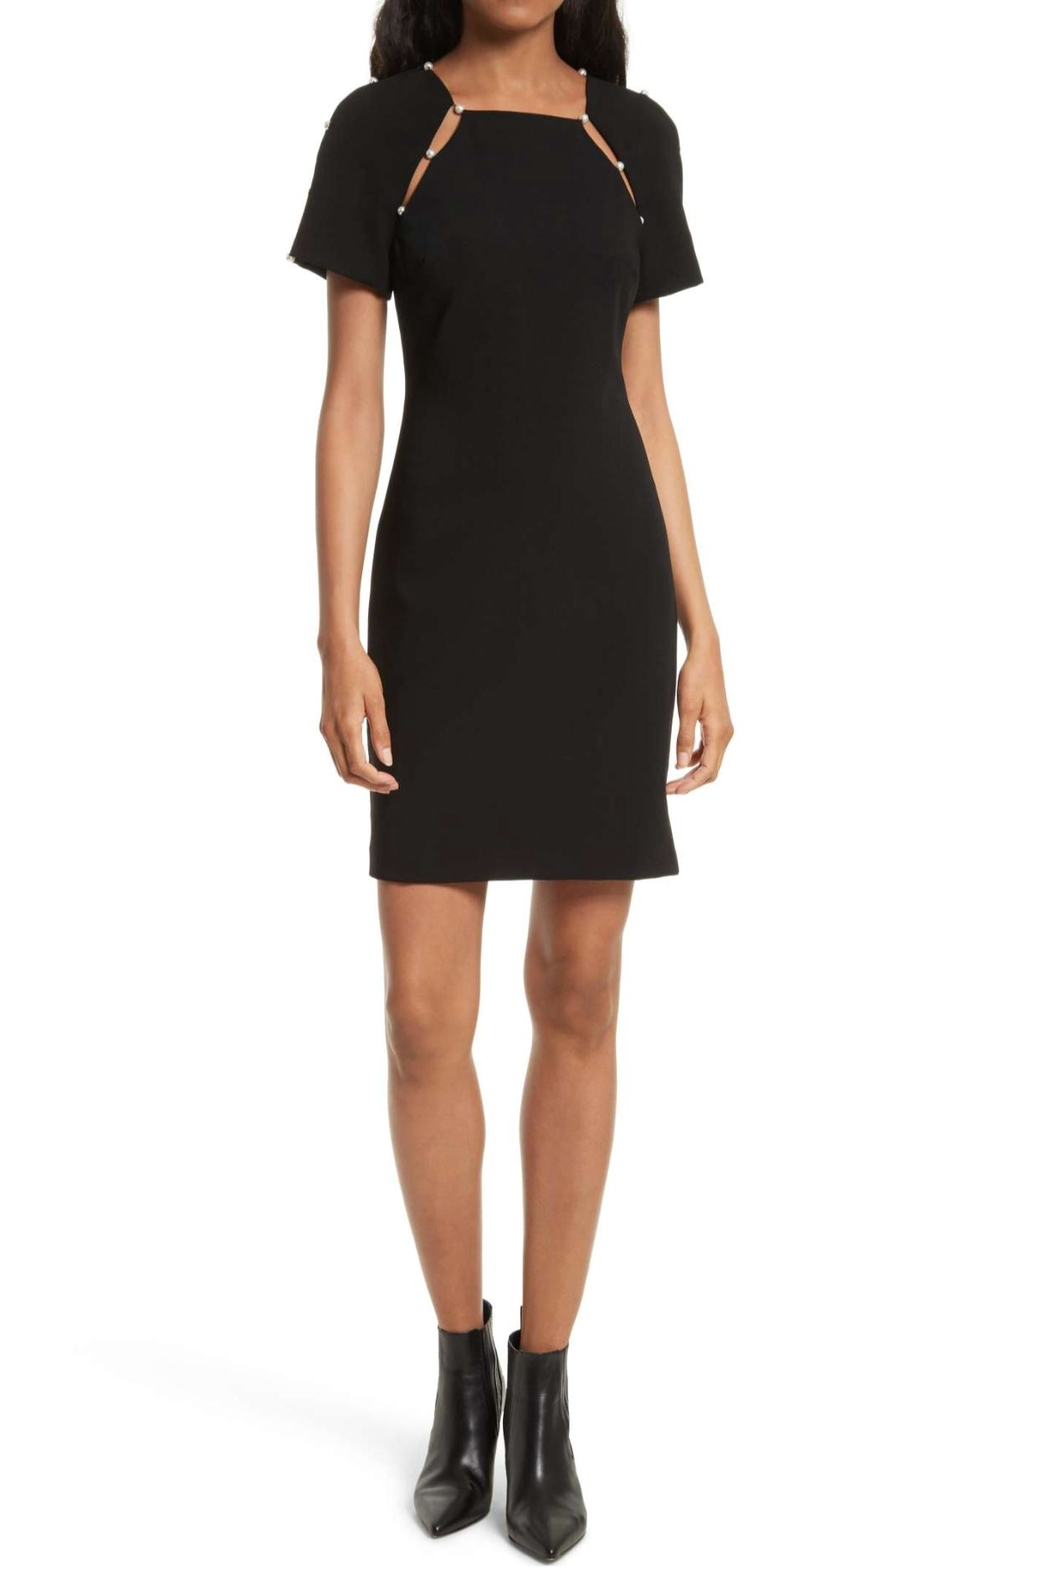 Alice + Olivia Kristiana Embellished Dress - Main Image